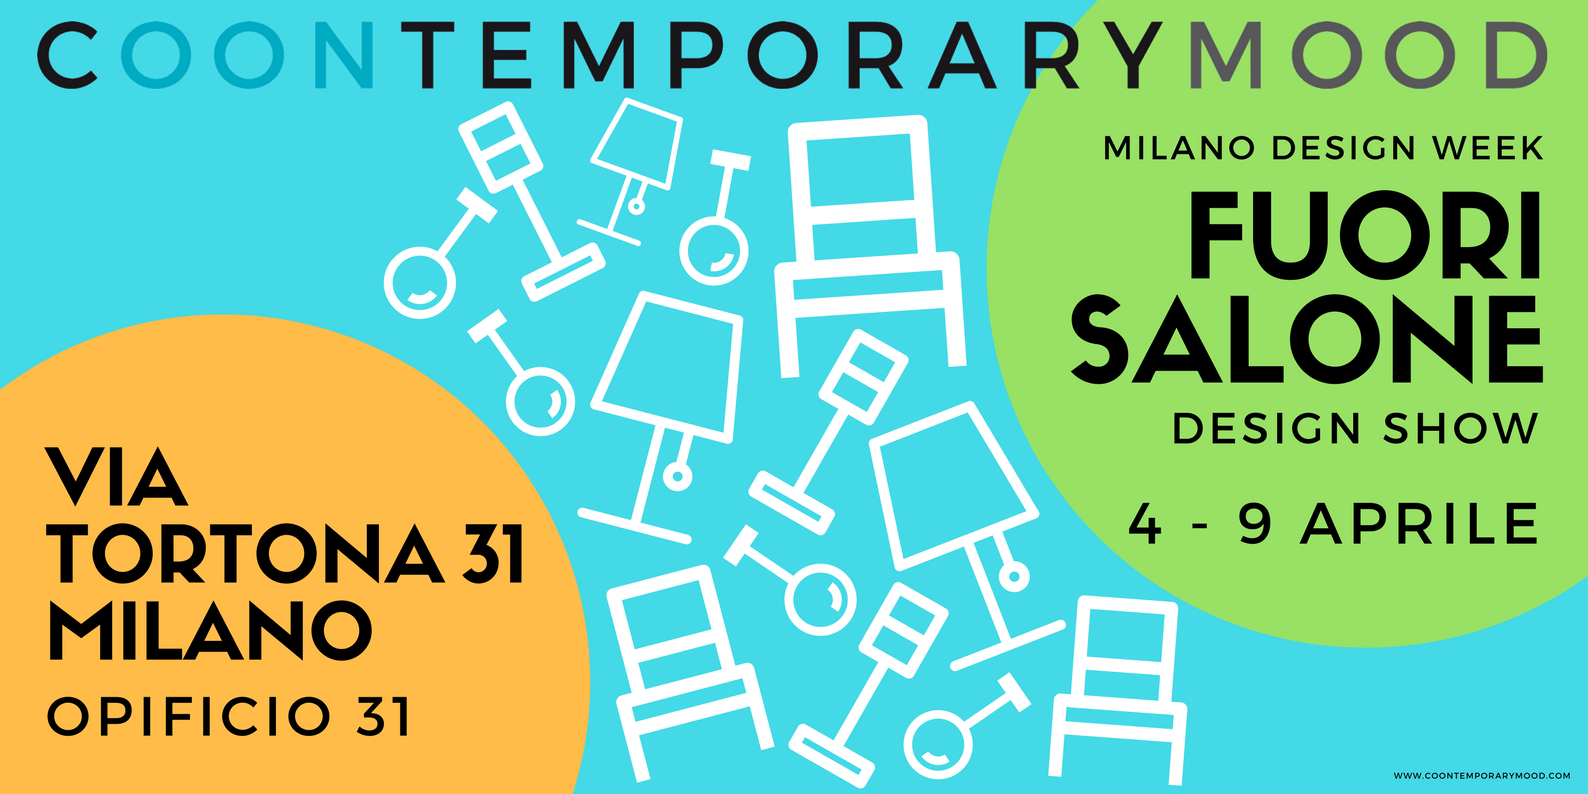 Coontemporarymood for Via tortona 31 milano